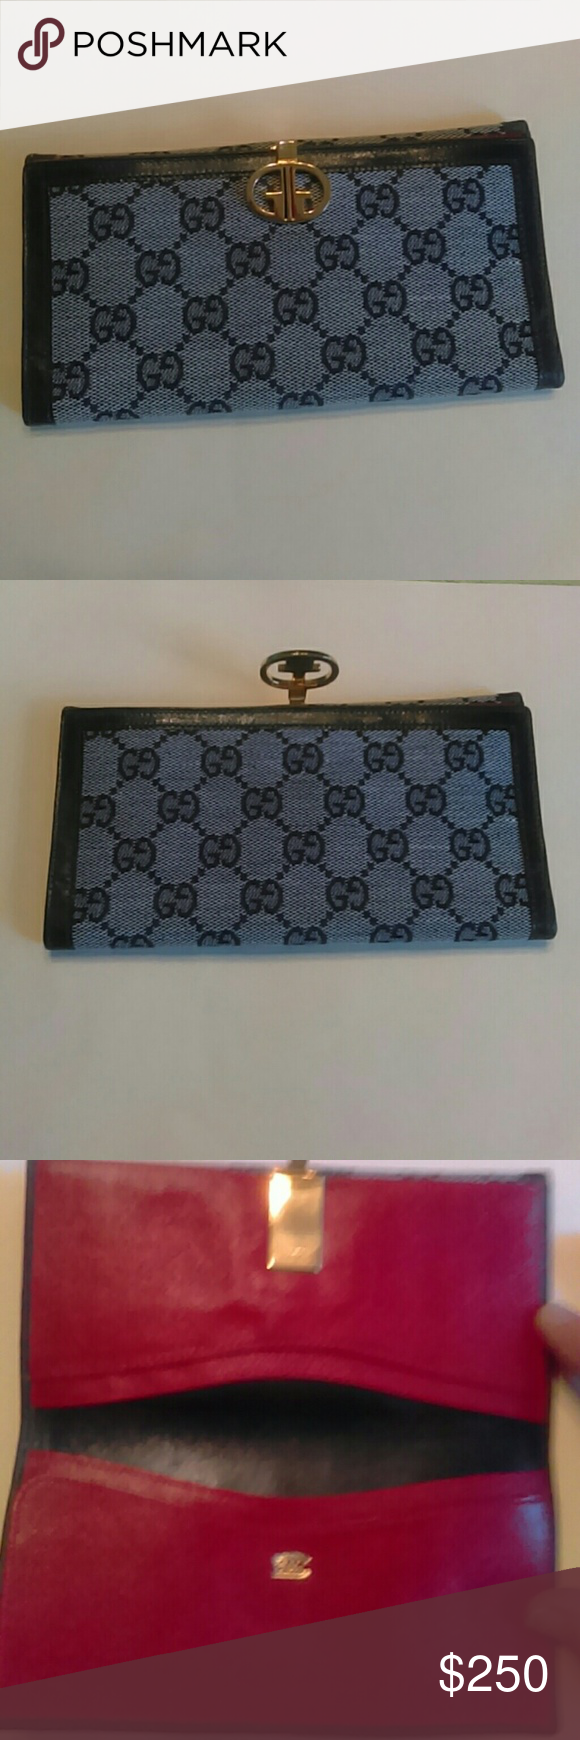 c3be9625b1227c Authentic GUCCI Wallet/BILLFOLD Vintage This black trim leather authentic  Gucci wallet is a beautiful